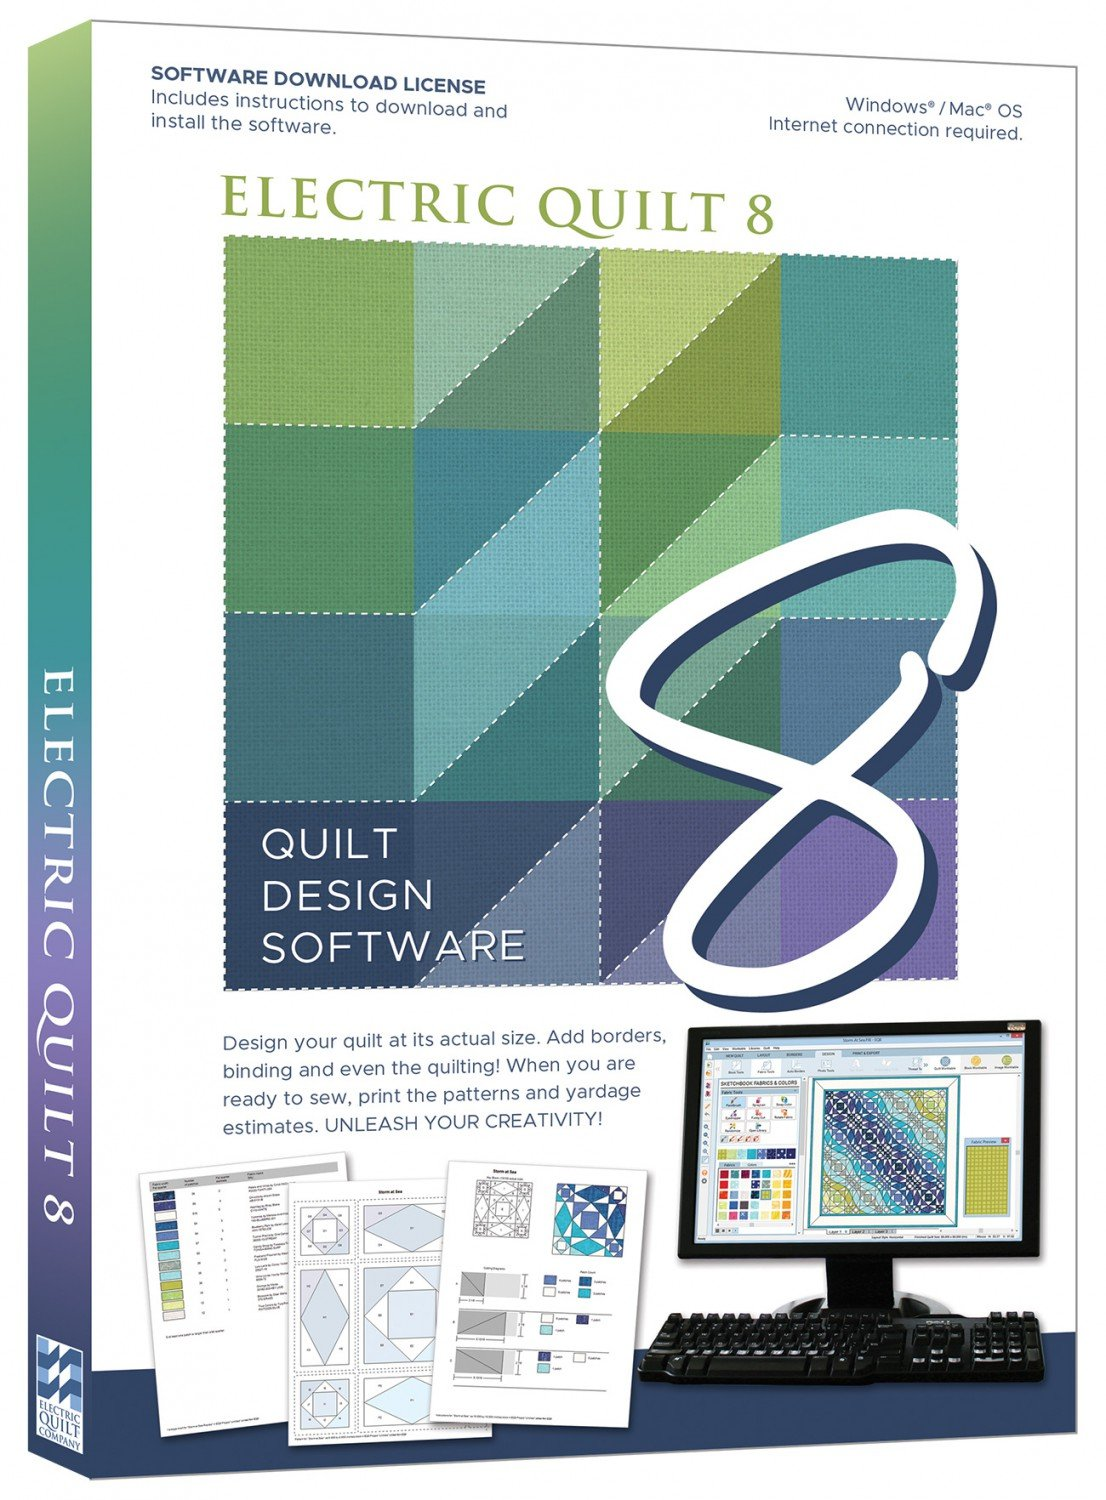 Electric Quilt 8 Quilt Design Software - EQ8